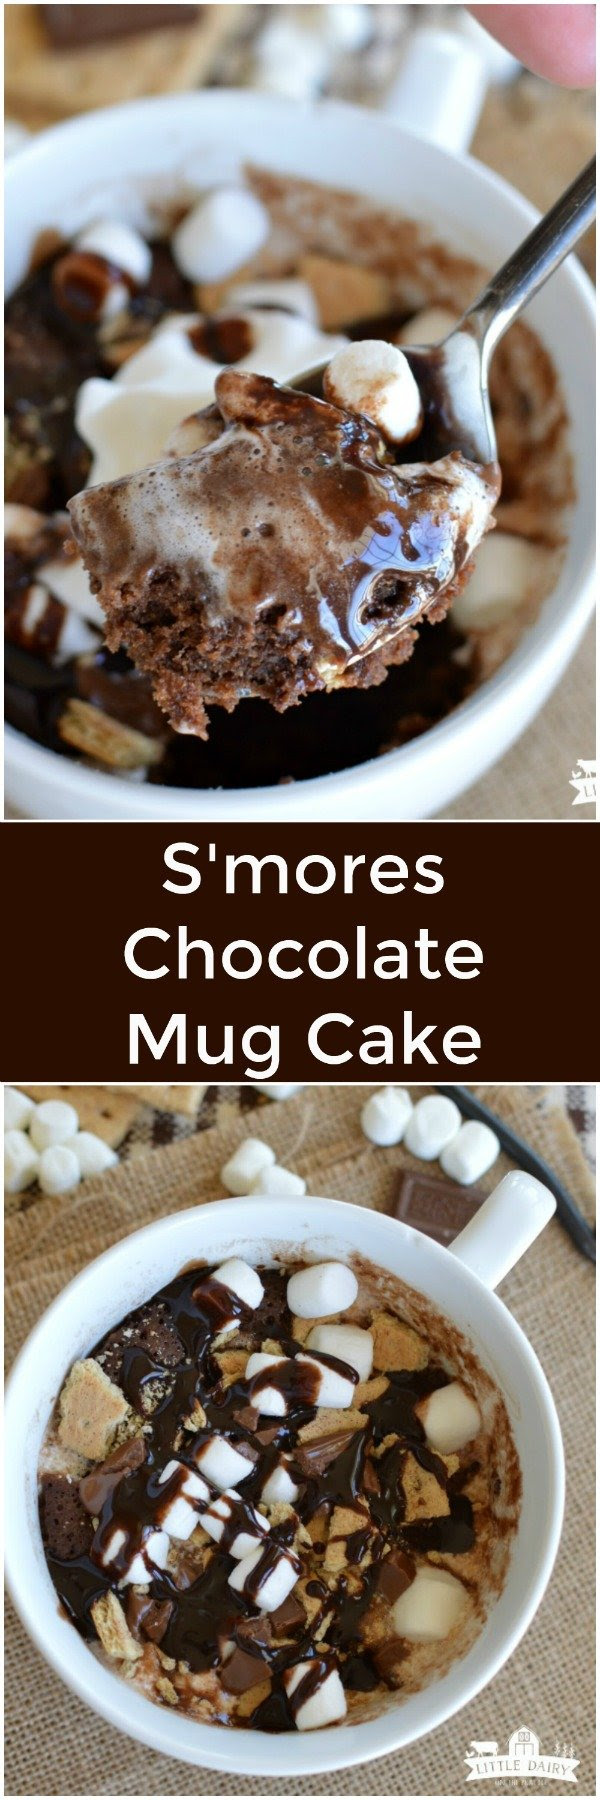 S'mores Chocolate Mug Cake - Little Dairy On the Prairie